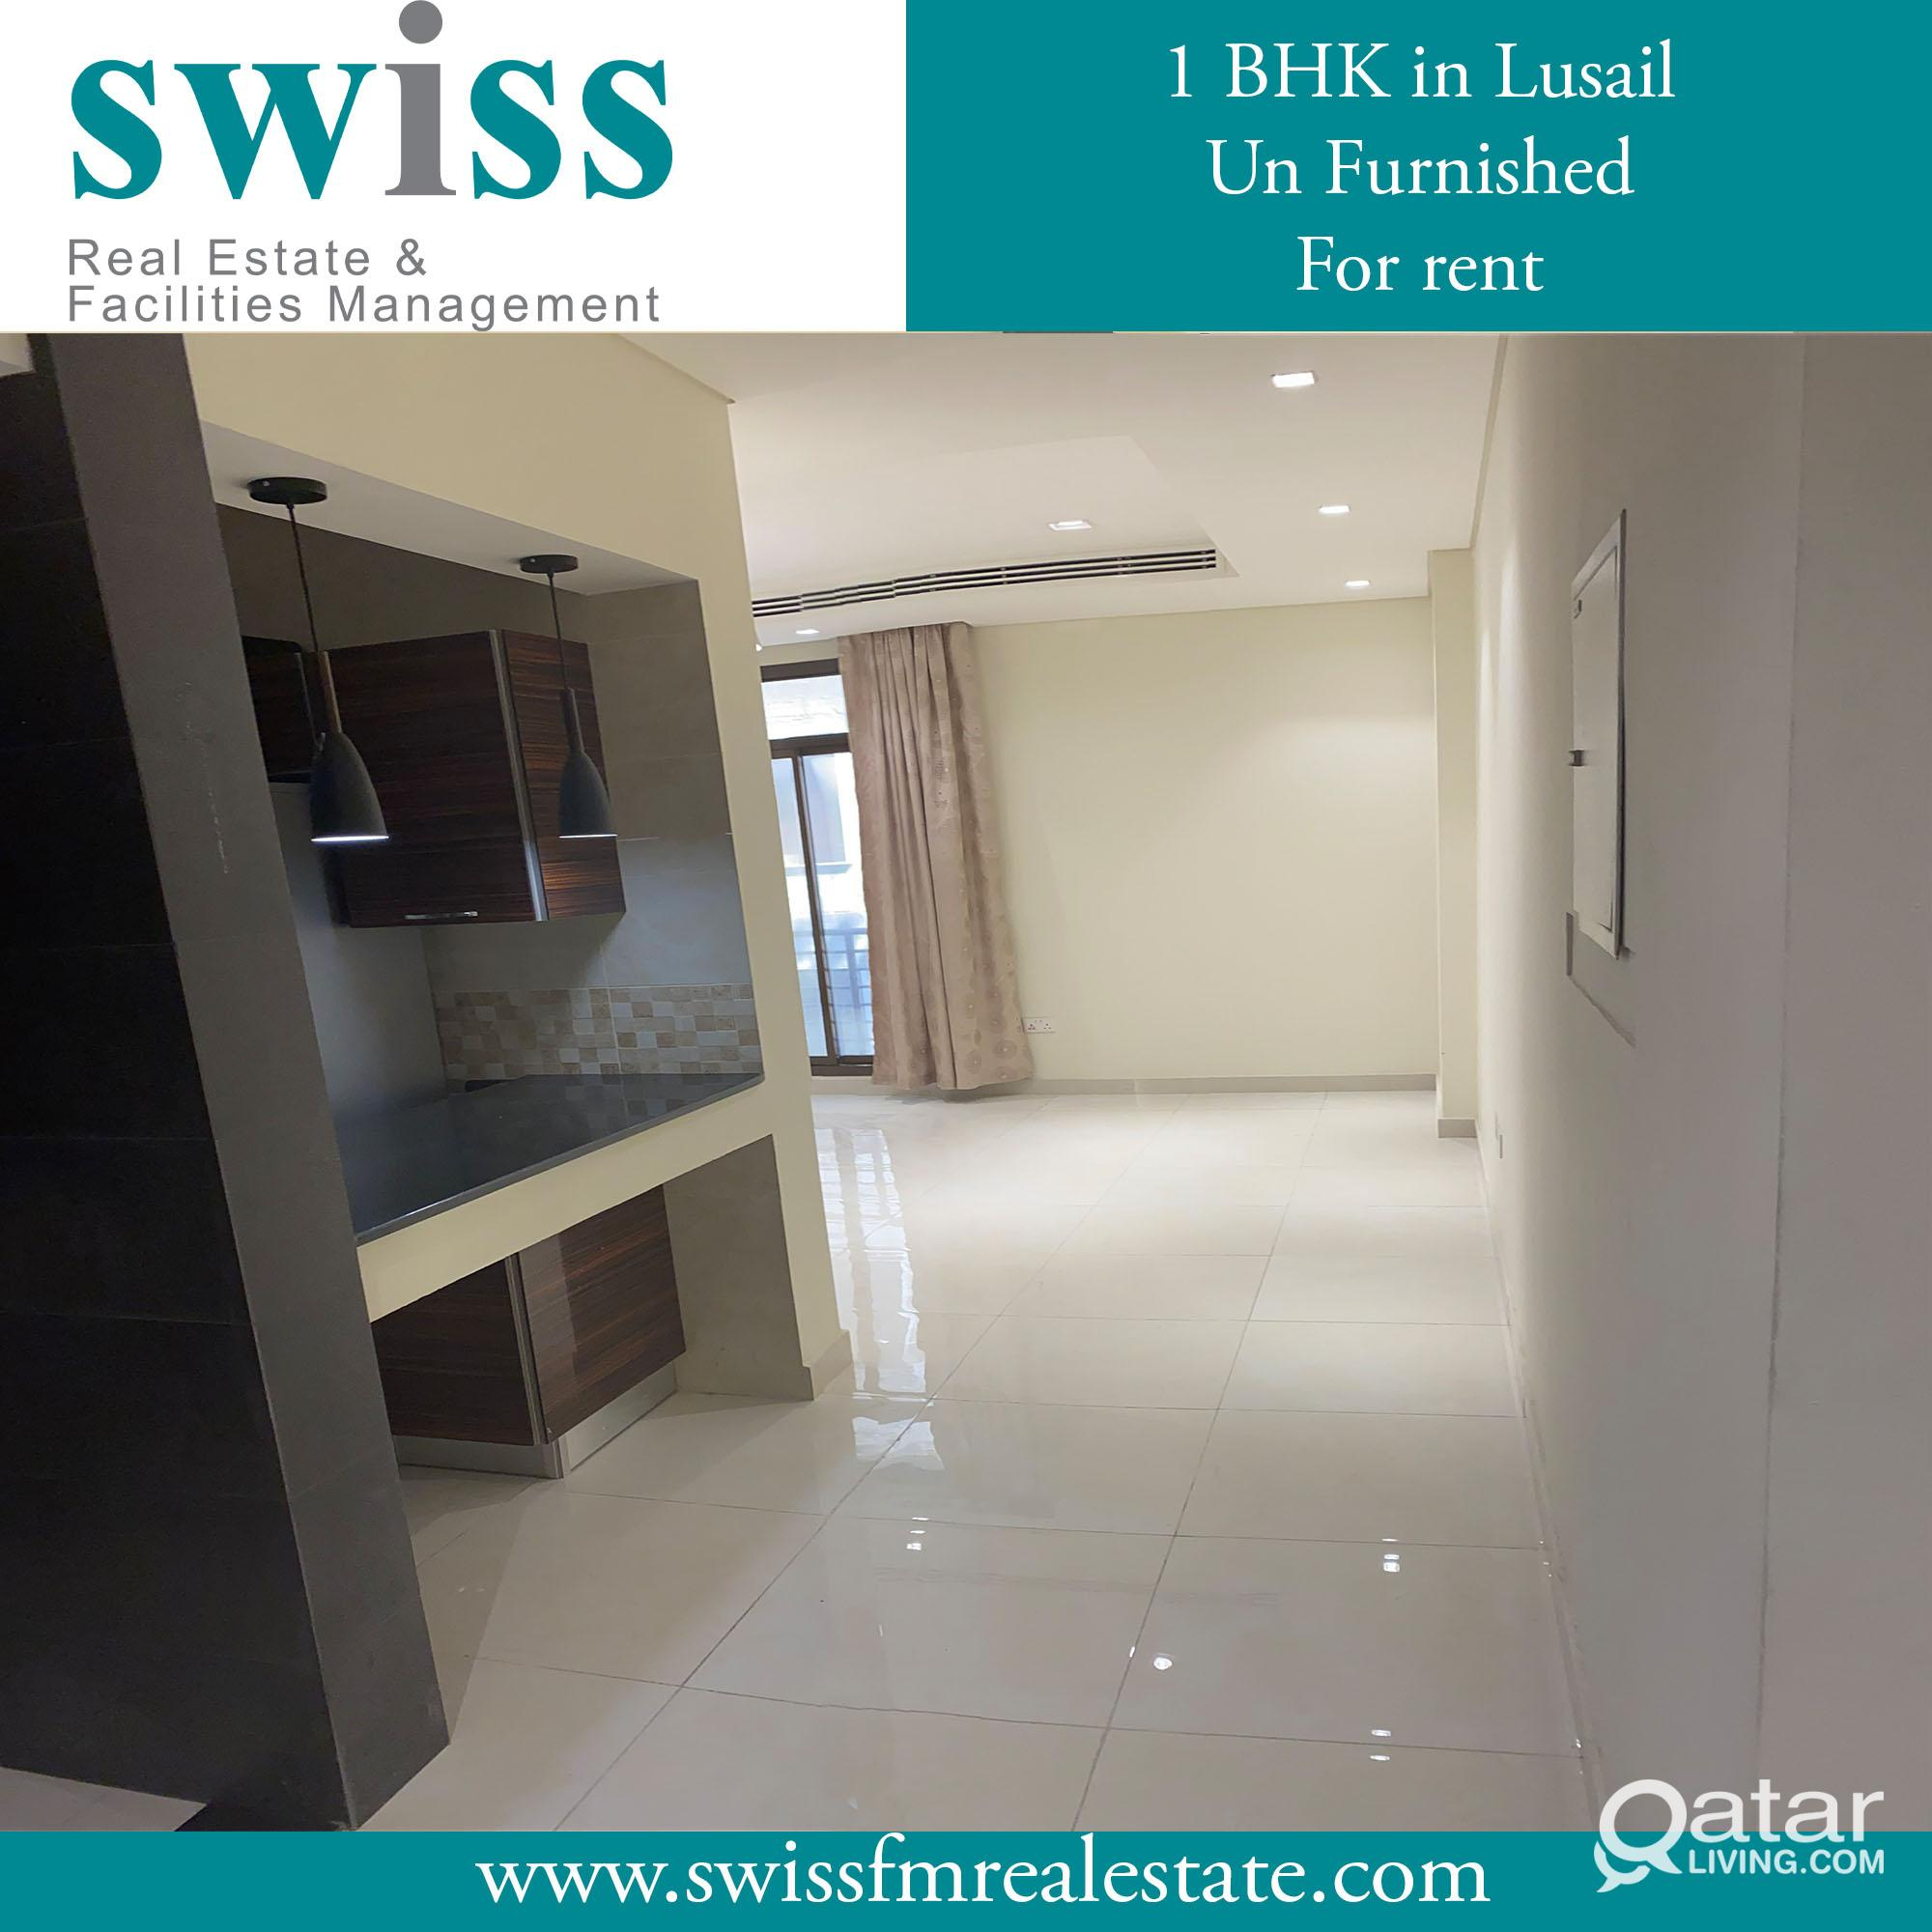 1 BHK unfurnished in Lusail for rent good price